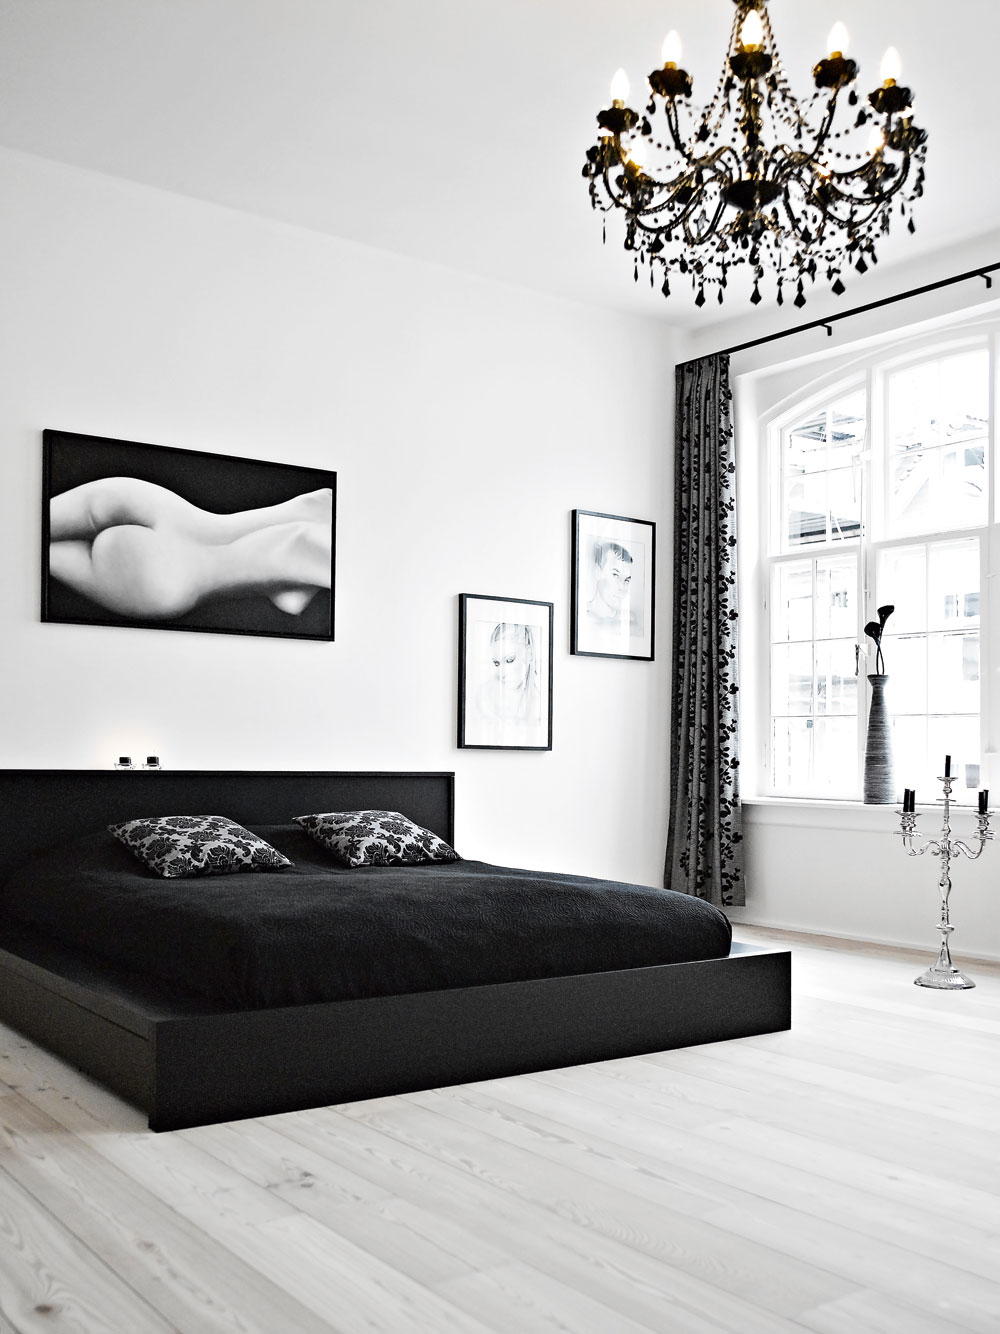 Bedroom paint designs black and white - Bedroom Paint Designs Black And White 16